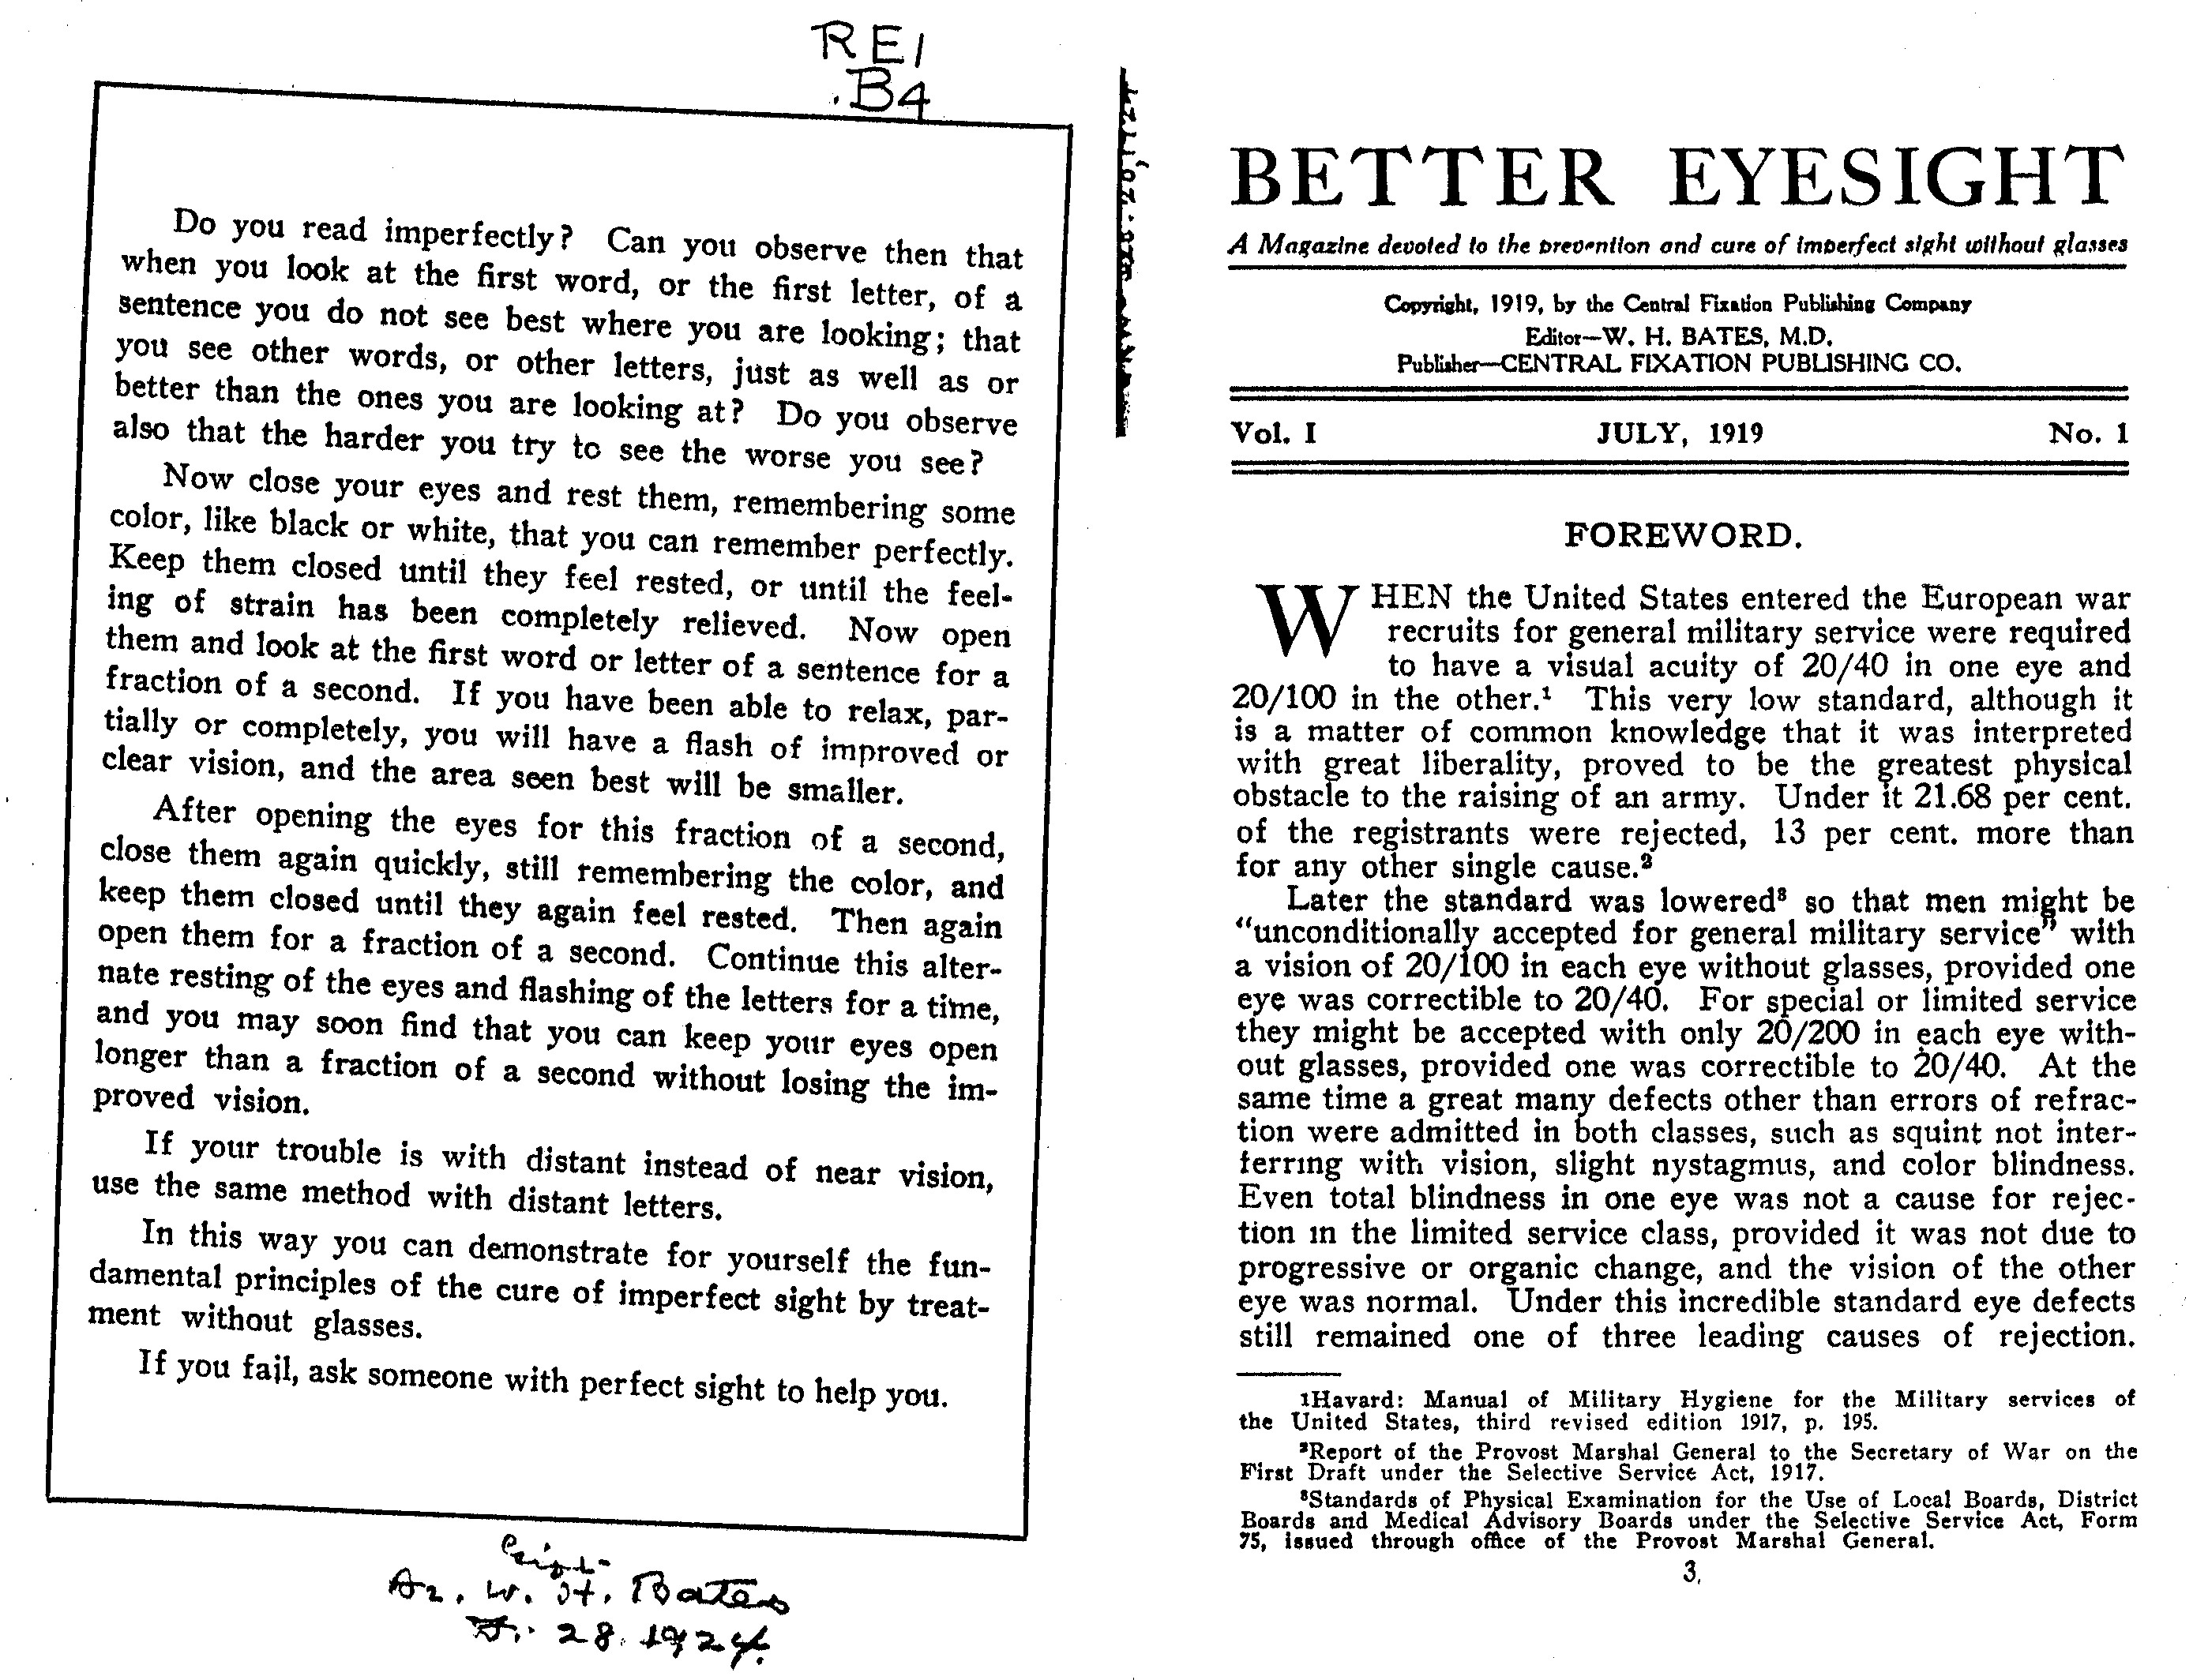 Better Eyesight page 2-3